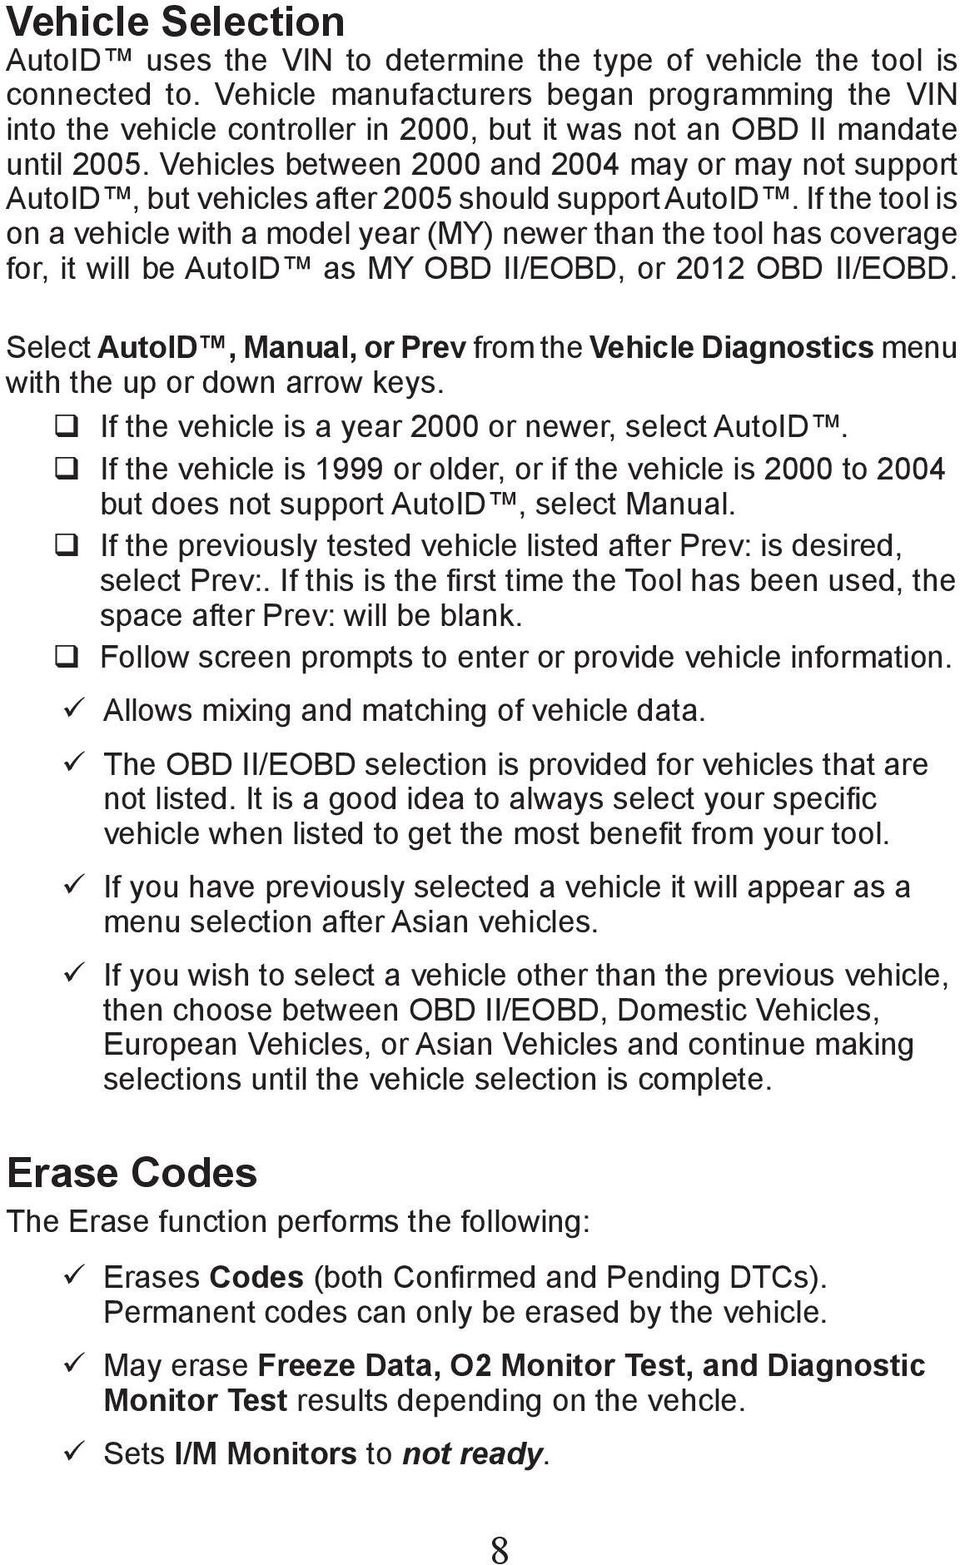 Vehicles between 2000 and 2004 may or may not support AutoID, but vehicles after 2005 should support AutoID.